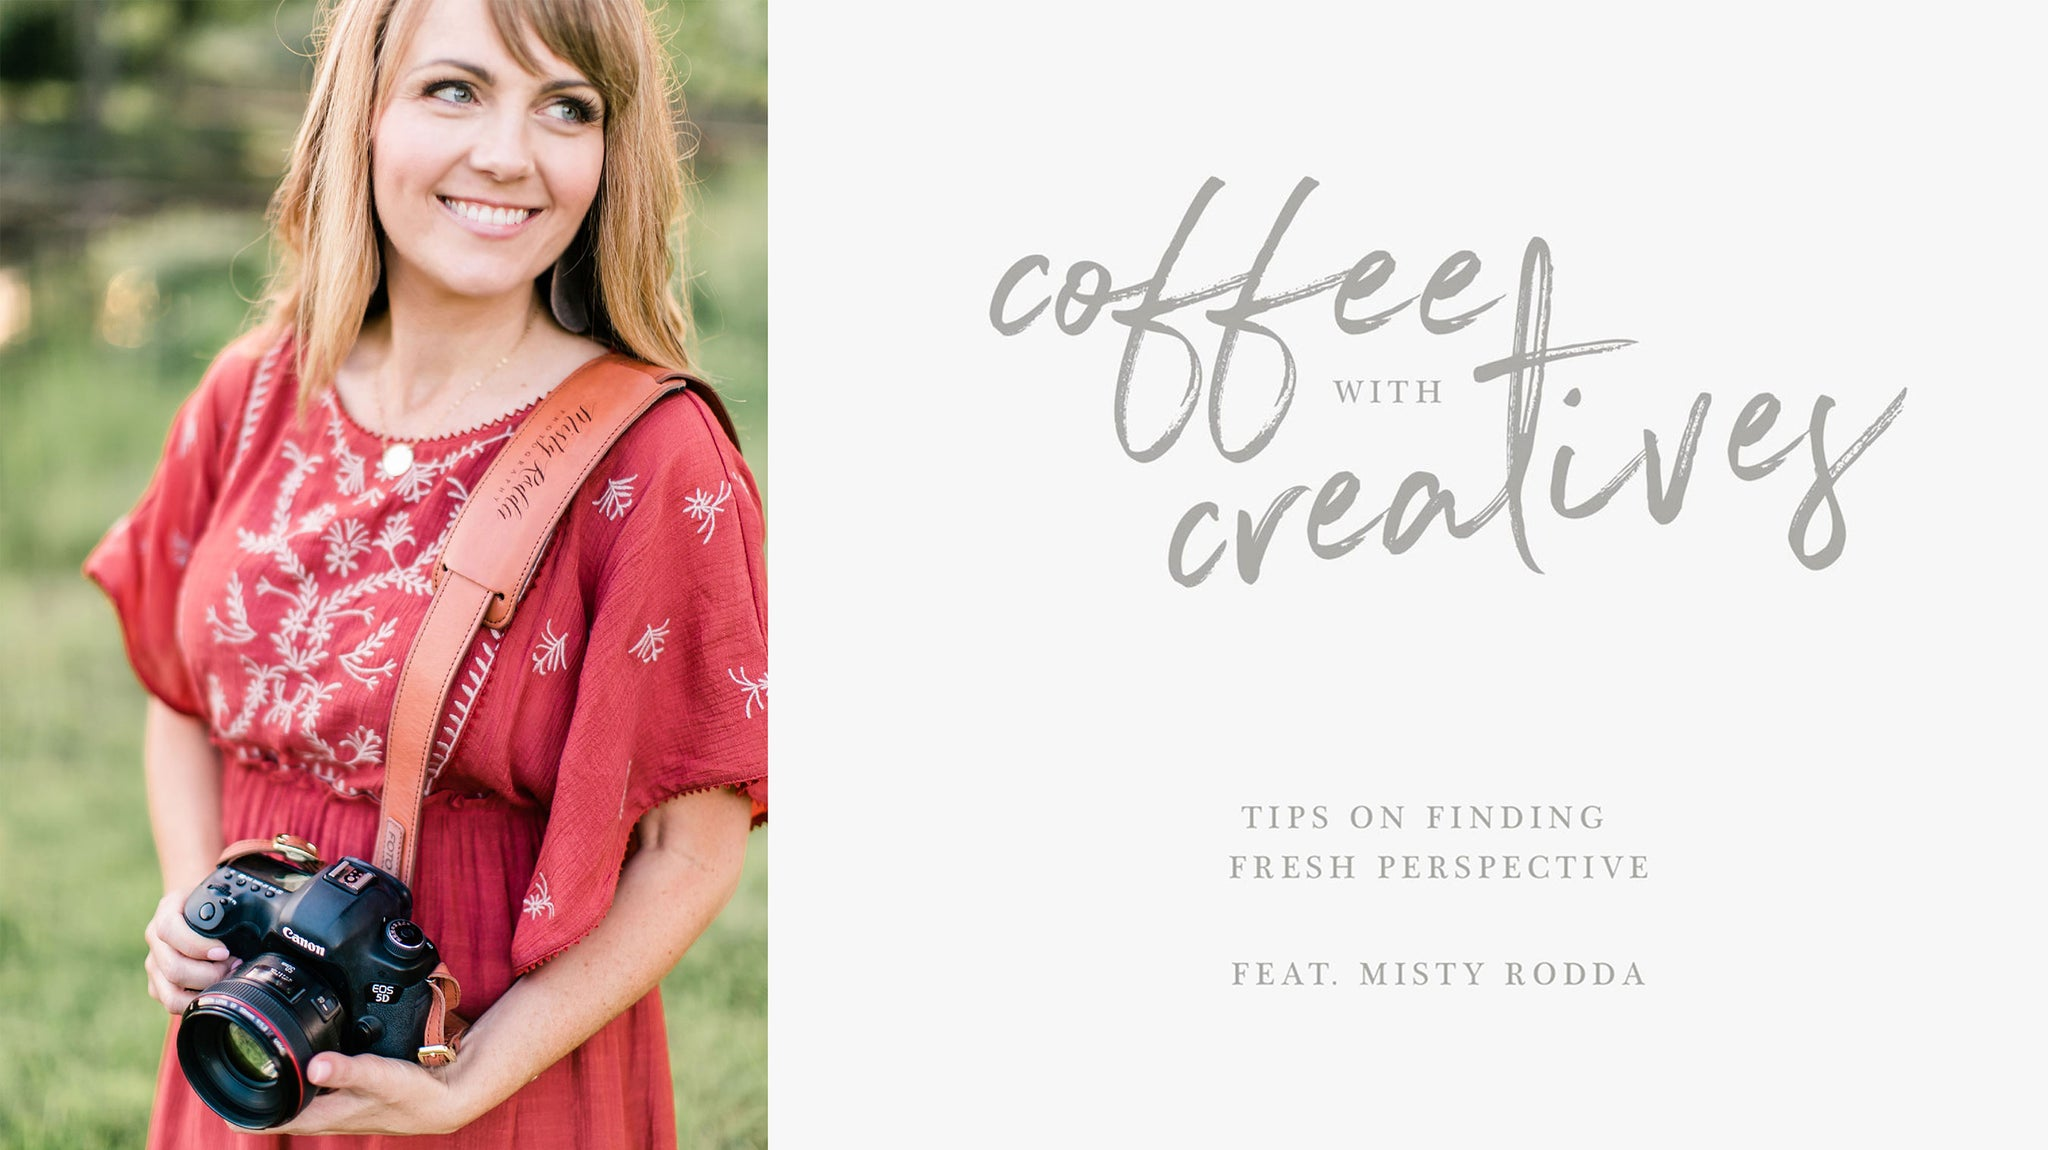 Professional wedding and portrait photographer, Misty Rodda, shares her tips and tricks on how to keep your perspective and creativity fresh!